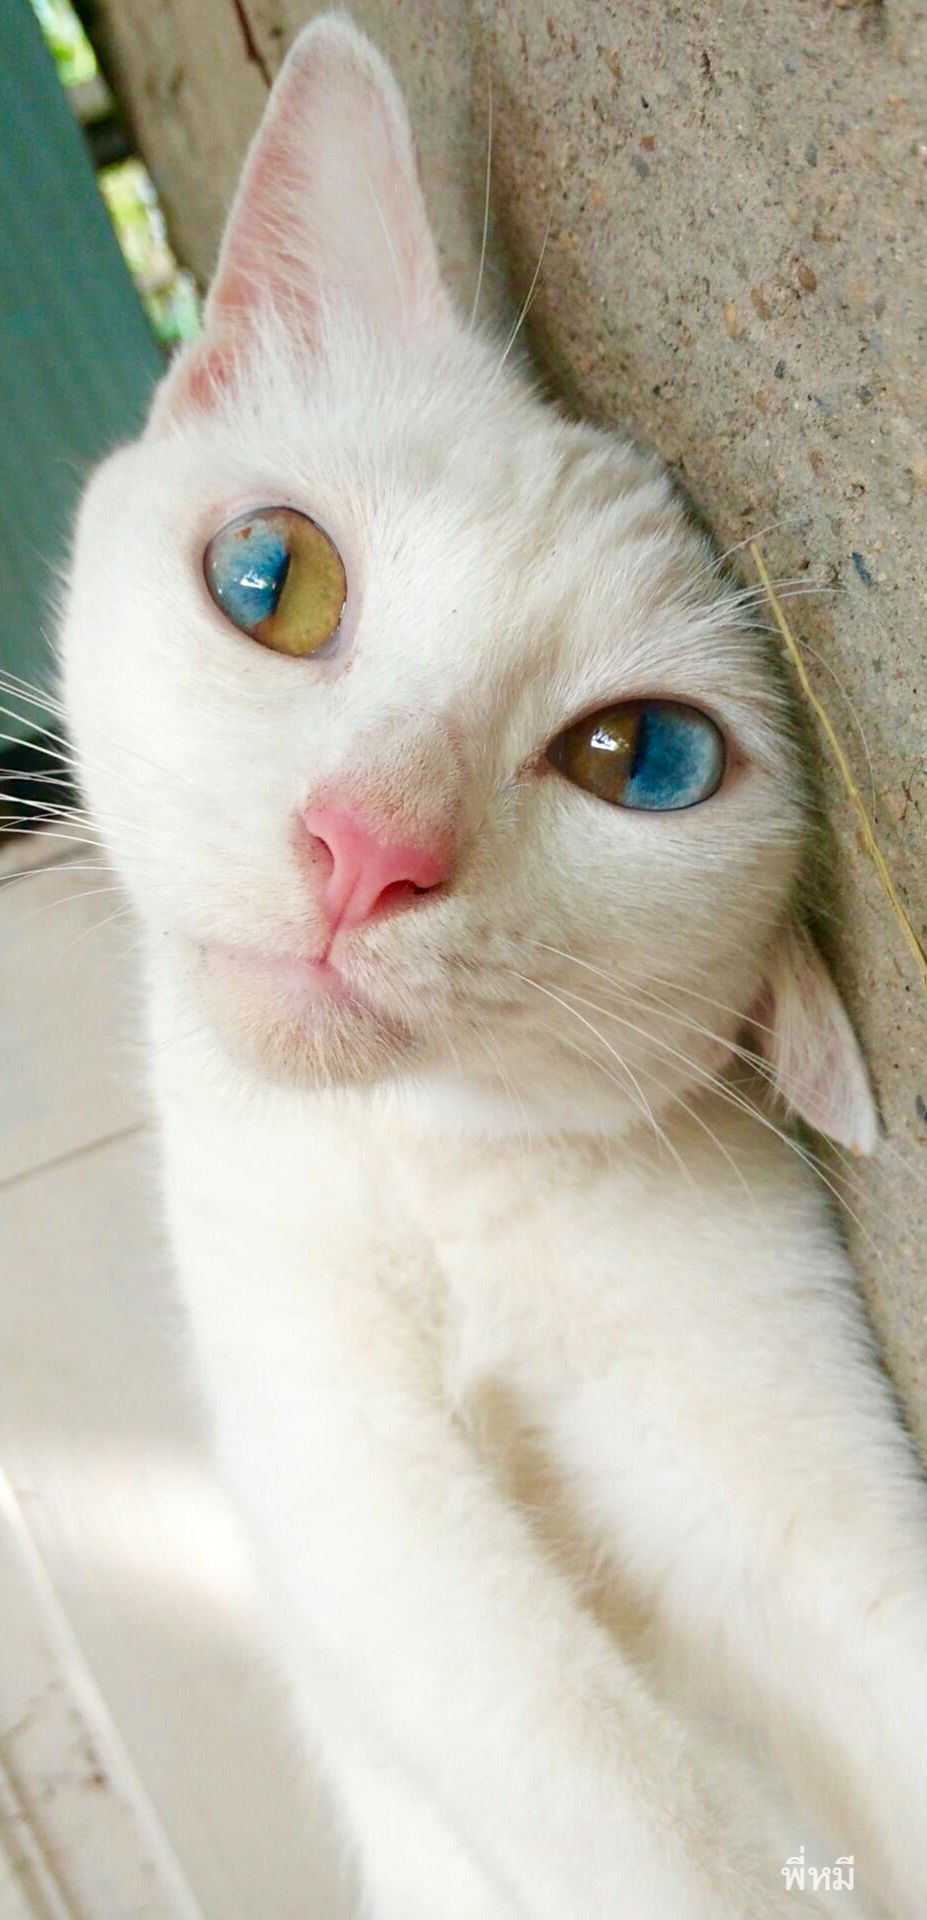 supposedly all white cats with blue eyes are deaf hopefully this